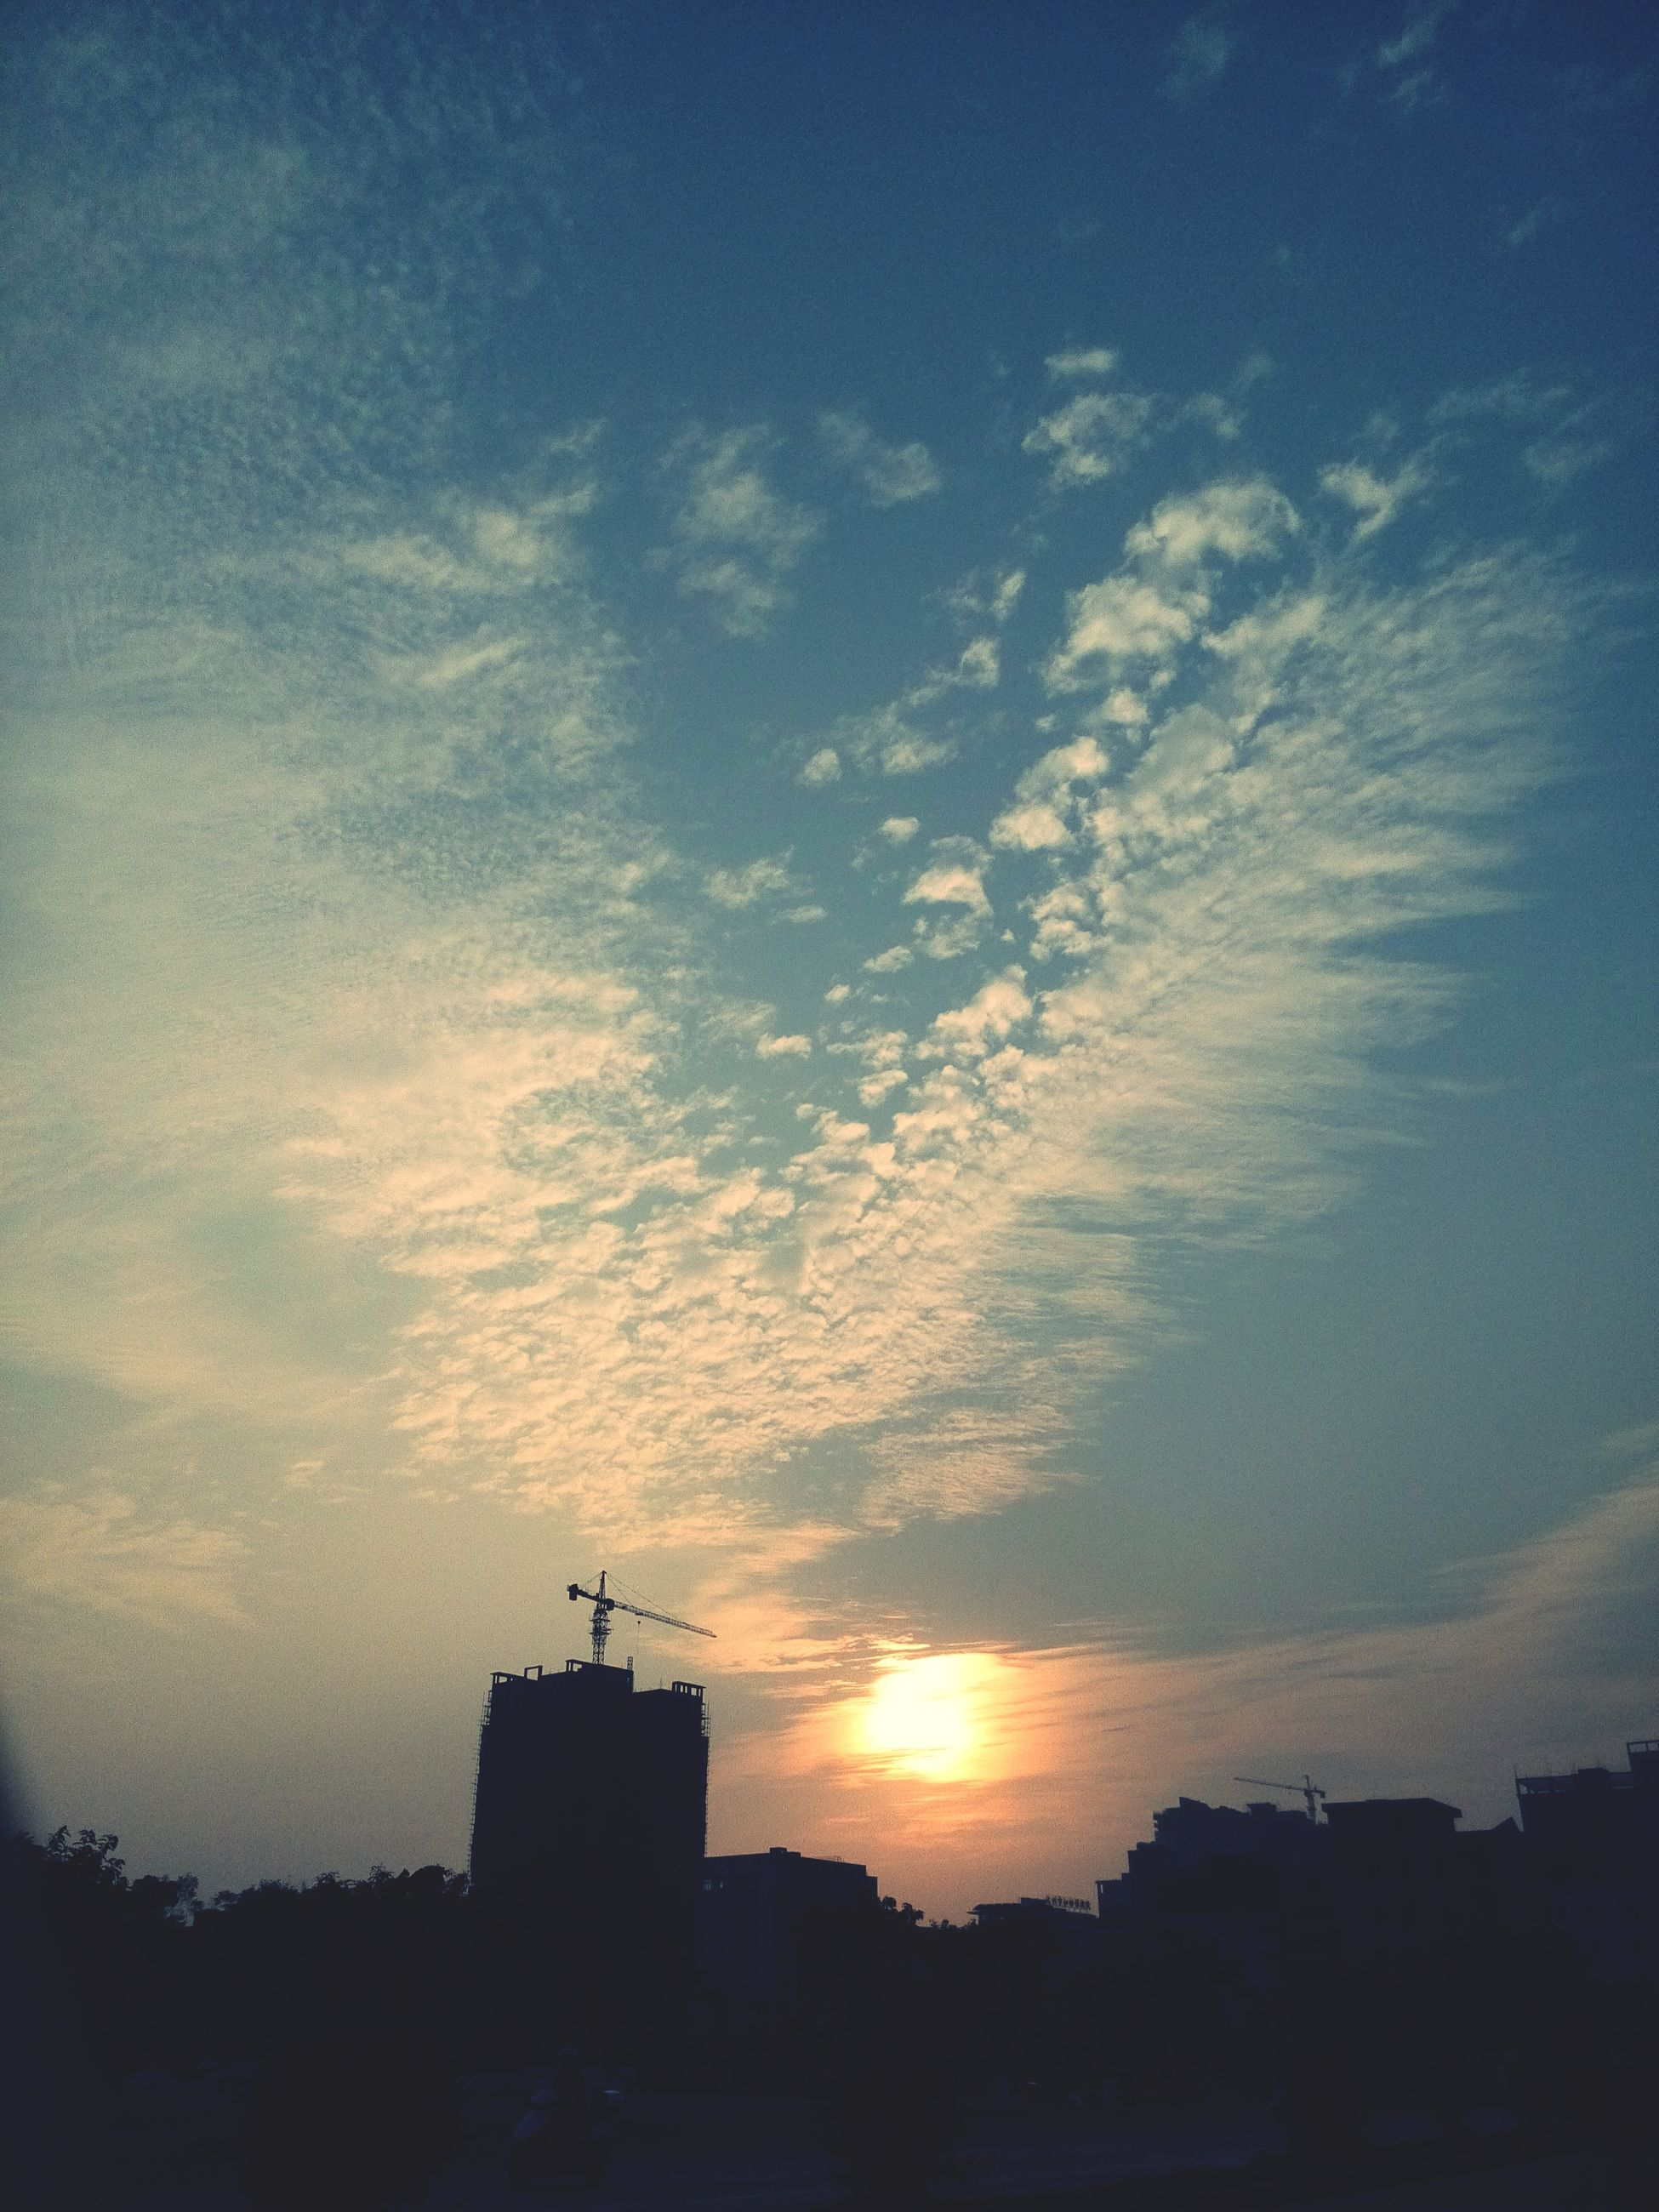 sunset, silhouette, building exterior, sky, architecture, built structure, sun, cloud - sky, sunlight, beauty in nature, scenics, orange color, cloud, nature, house, sunbeam, tranquil scene, outdoors, low angle view, tranquility